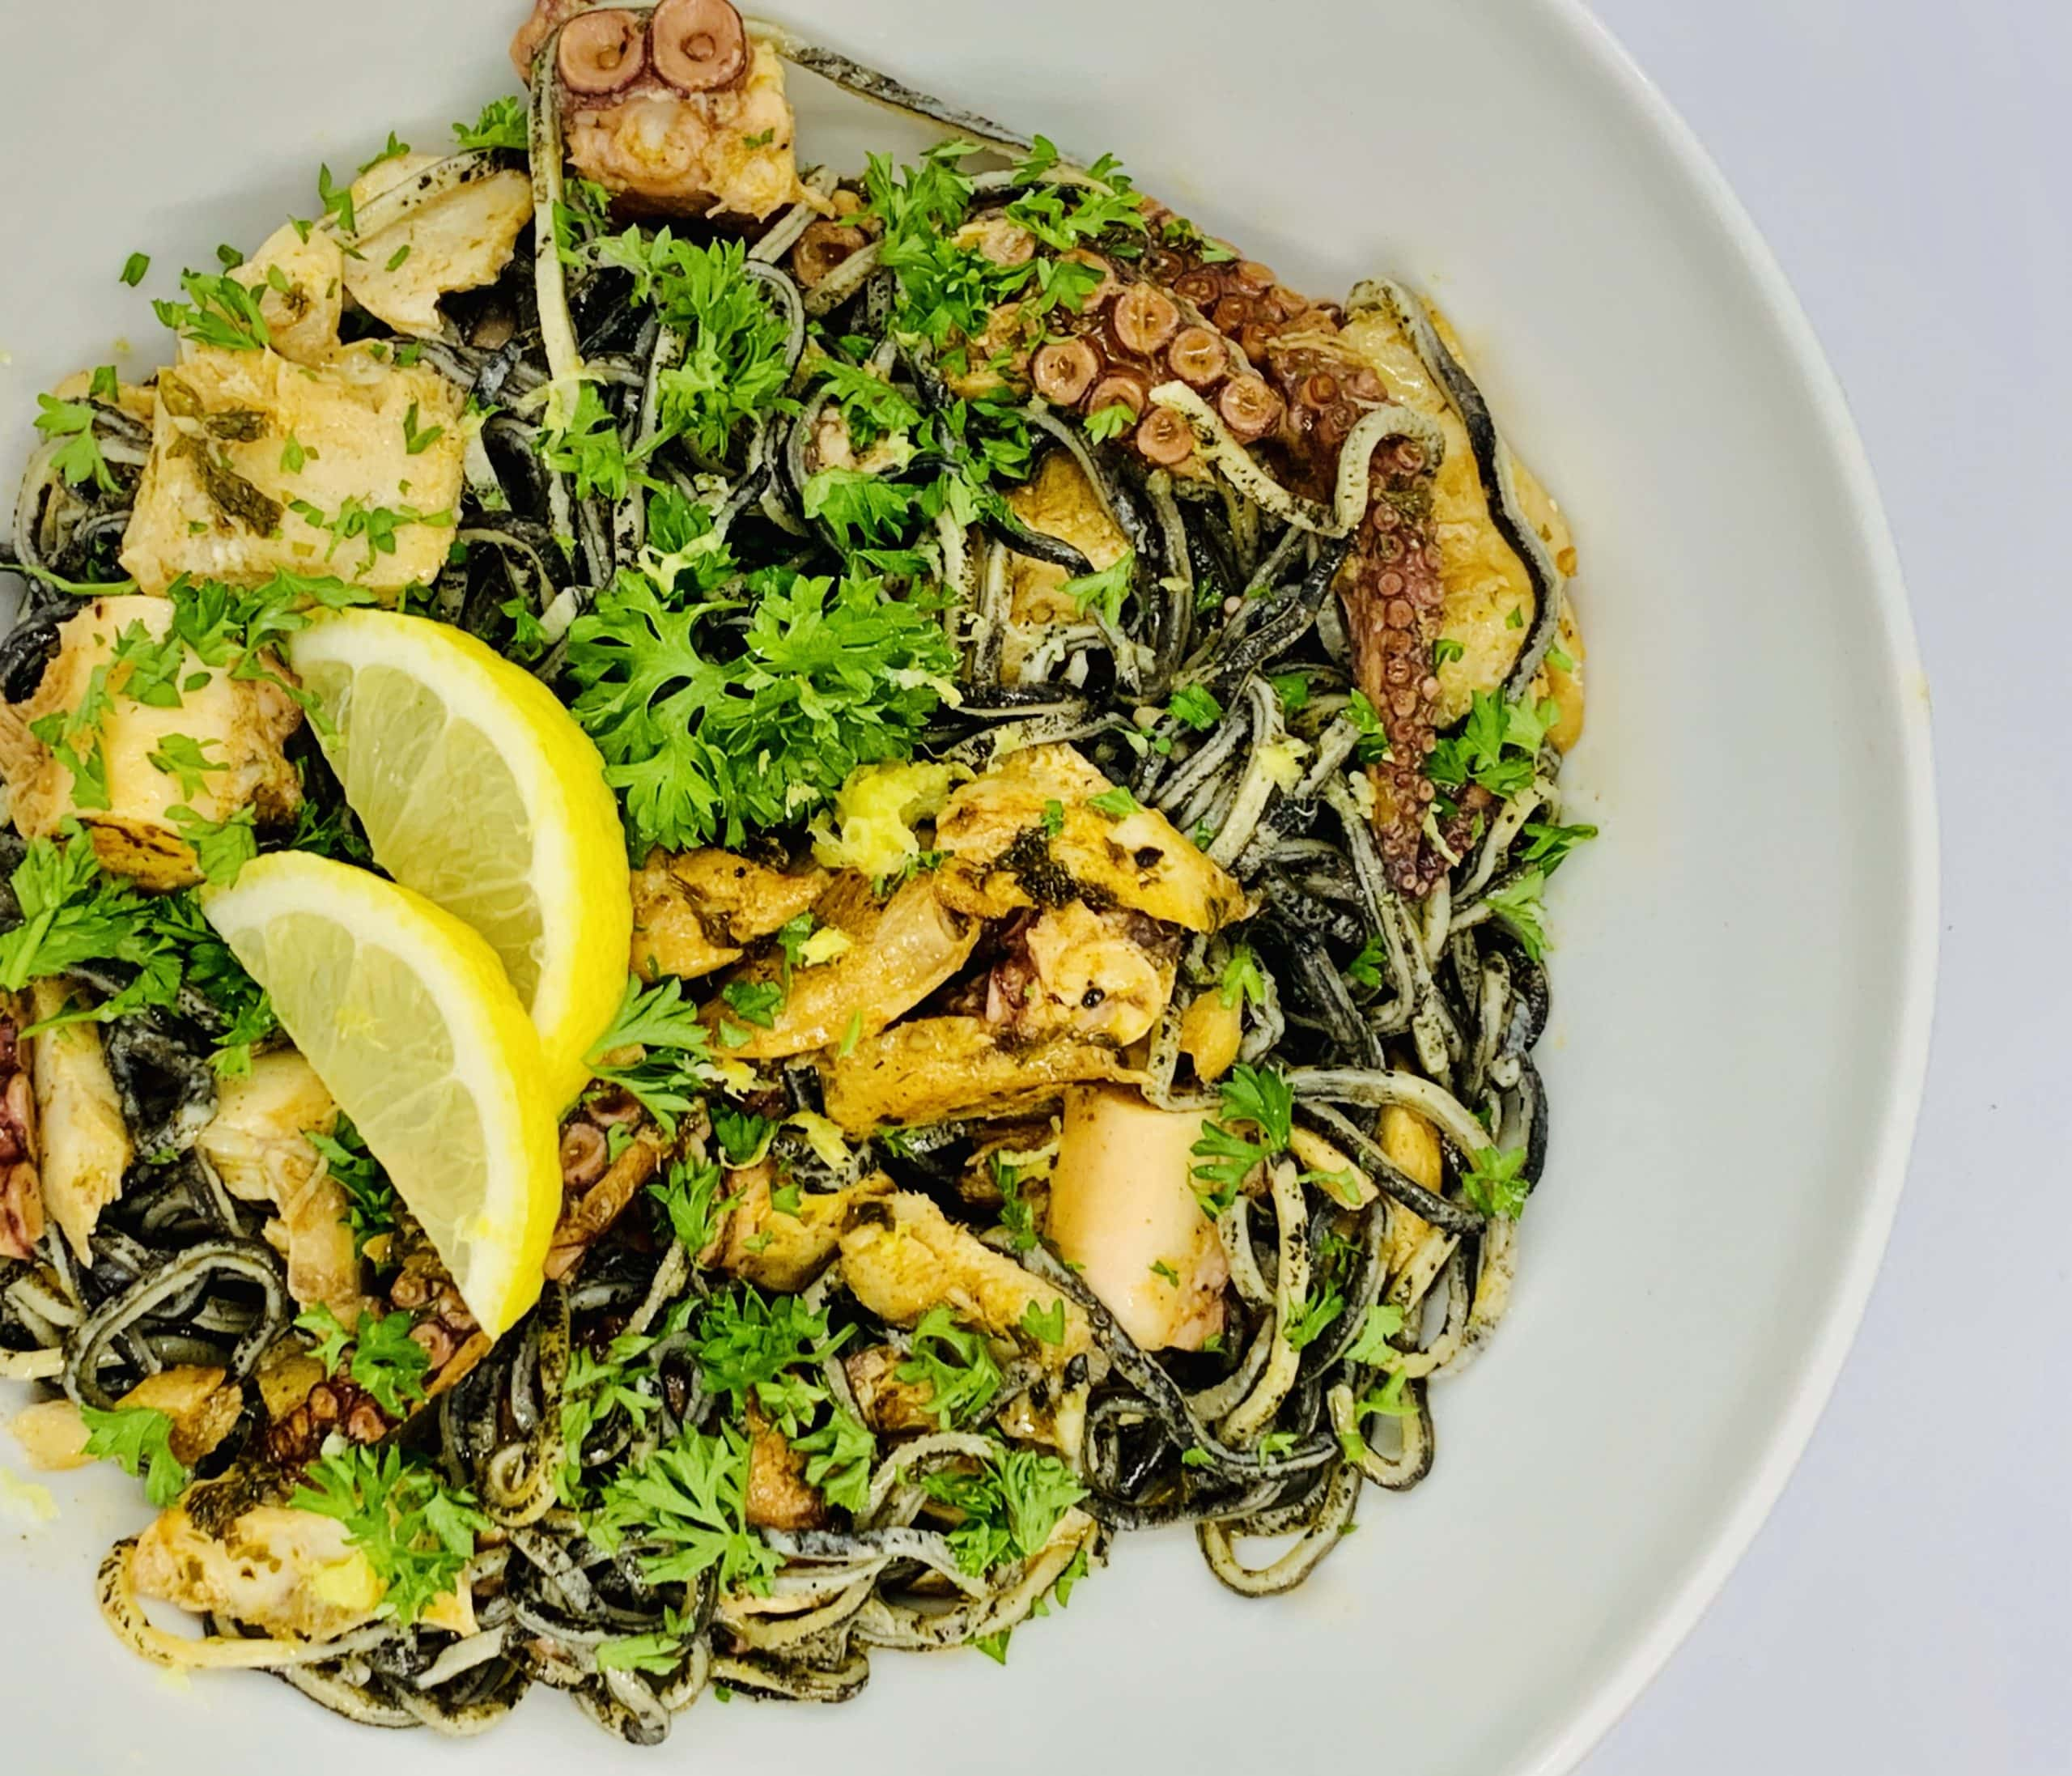 ChillaxBBQ Stay@Home Recipes #39 - Home-Made Squid-Ink Pasta 'w' Alaskan Rock Fish & Octopus